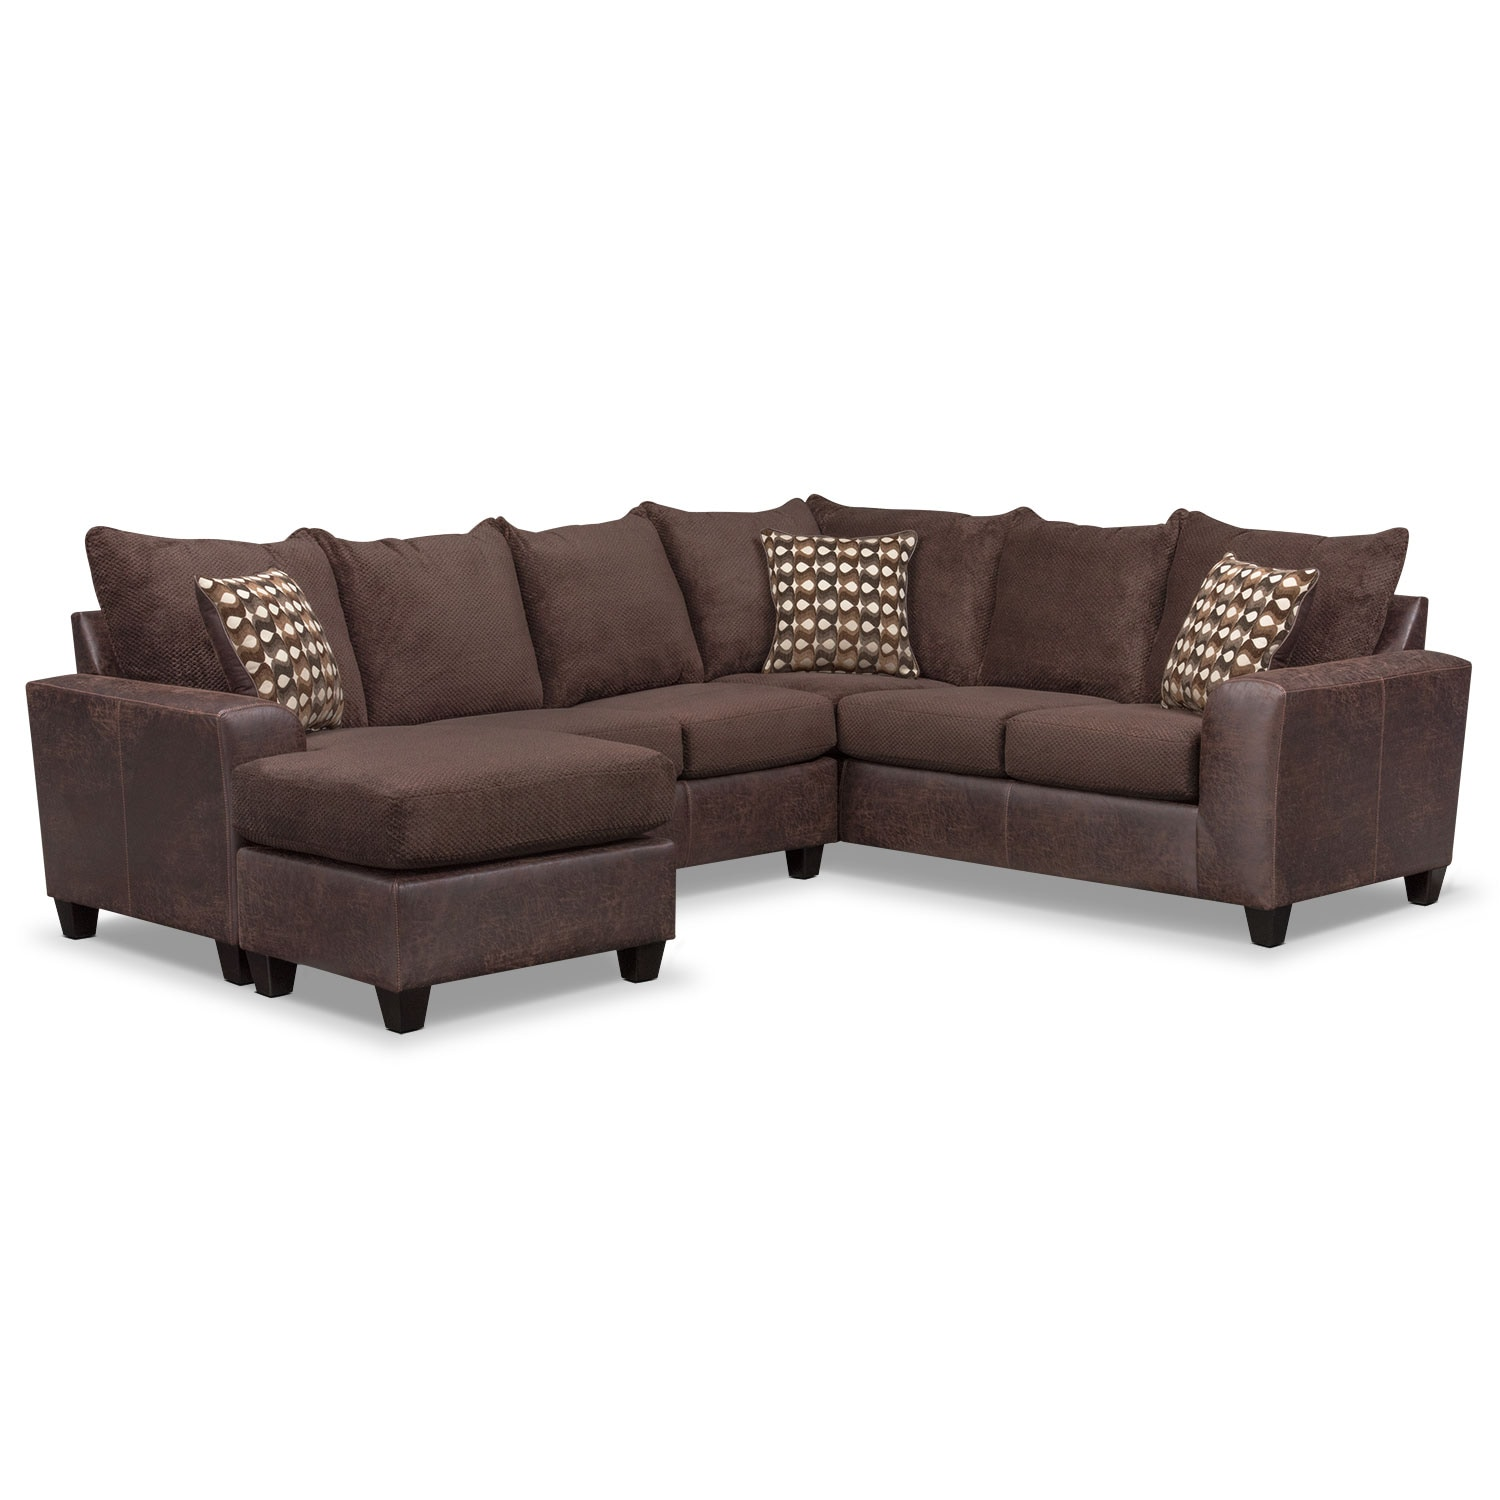 Stanton 3 piece living room set brown - Brando 3 Piece Sectional With Modular Chaise Chocolate